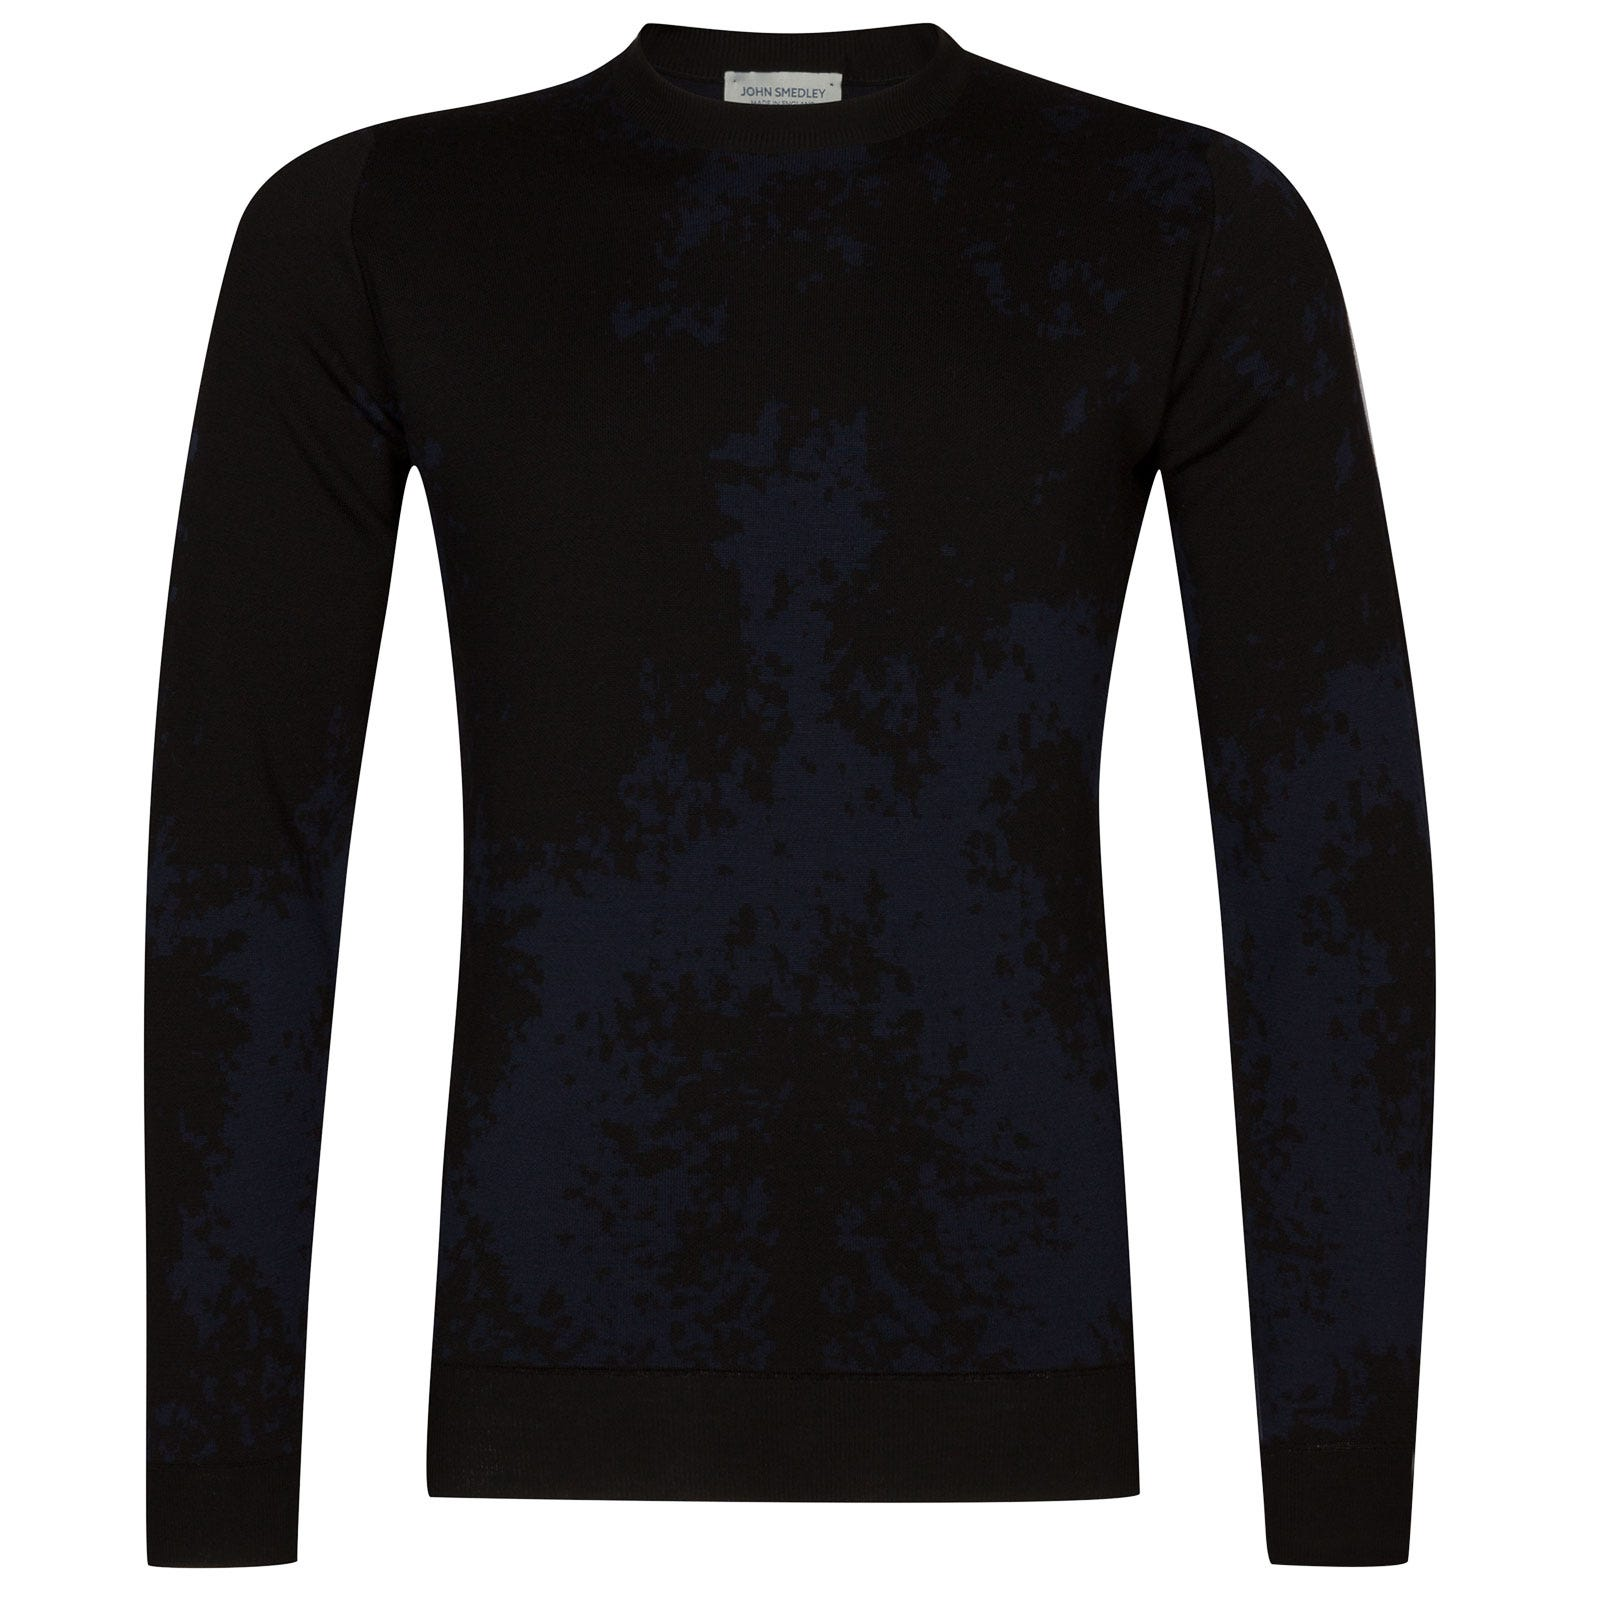 John Smedley bowland Merino Wool Pullover in Black/Midnight-M